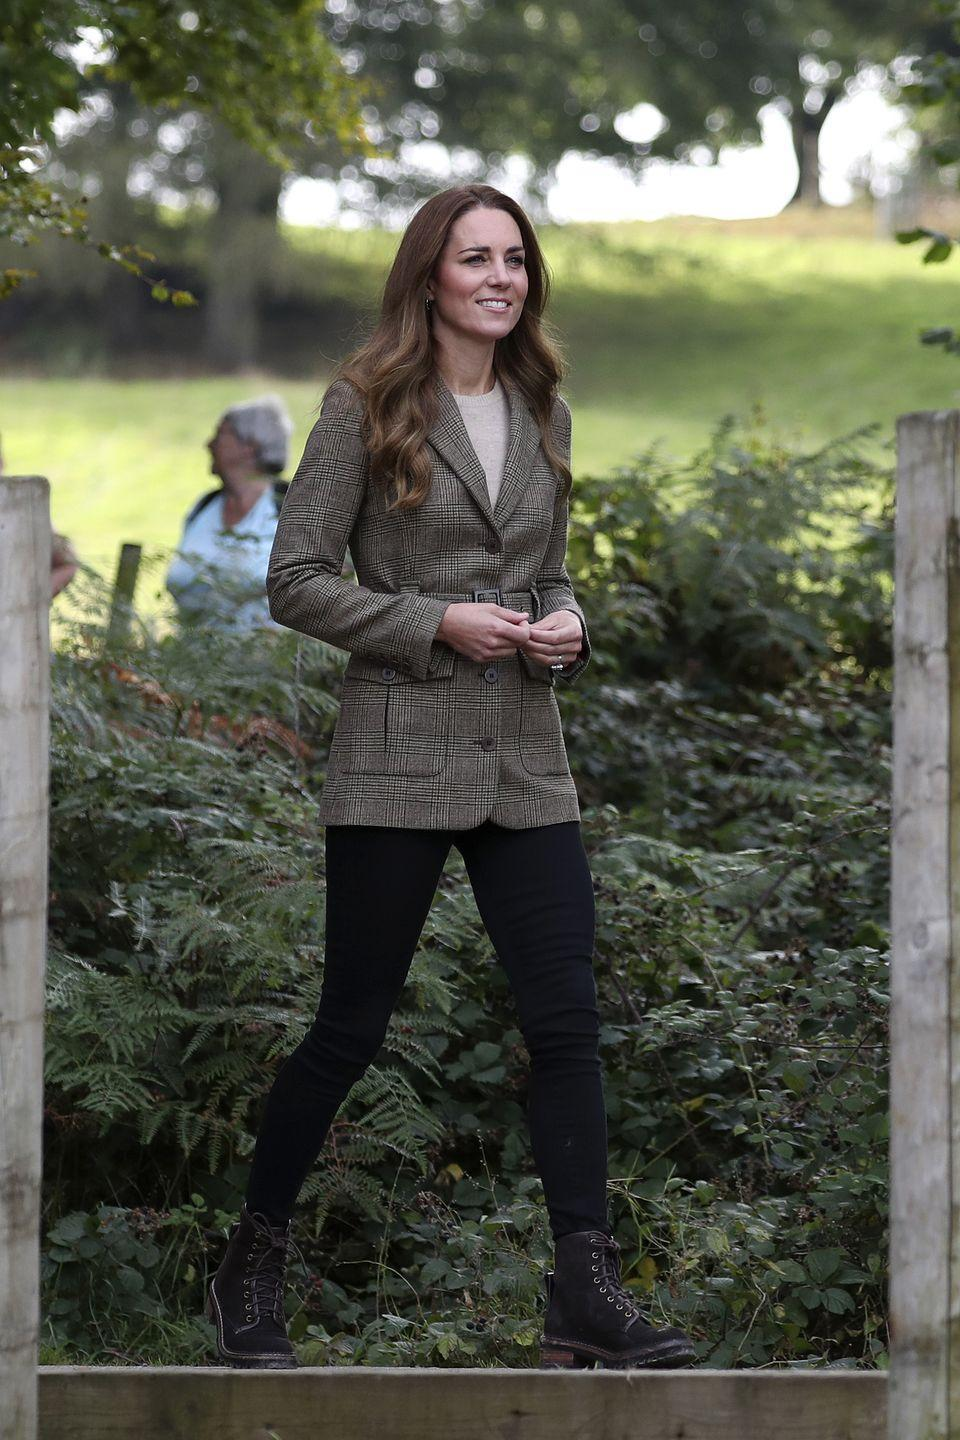 """<p>The Duchess of Cambridge looked <a href=""""https://www.townandcountrymag.com/society/tradition/a37677504/kate-middleton-preppy-fall-blazer-outfit-photos/"""" rel=""""nofollow noopener"""" target=""""_blank"""" data-ylk=""""slk:ready for fall"""" class=""""link rapid-noclick-resp"""">ready for fall</a> in a chic belted, plaid blazer, skinny jeans, and combat boots, while heading on a boat ride. </p>"""